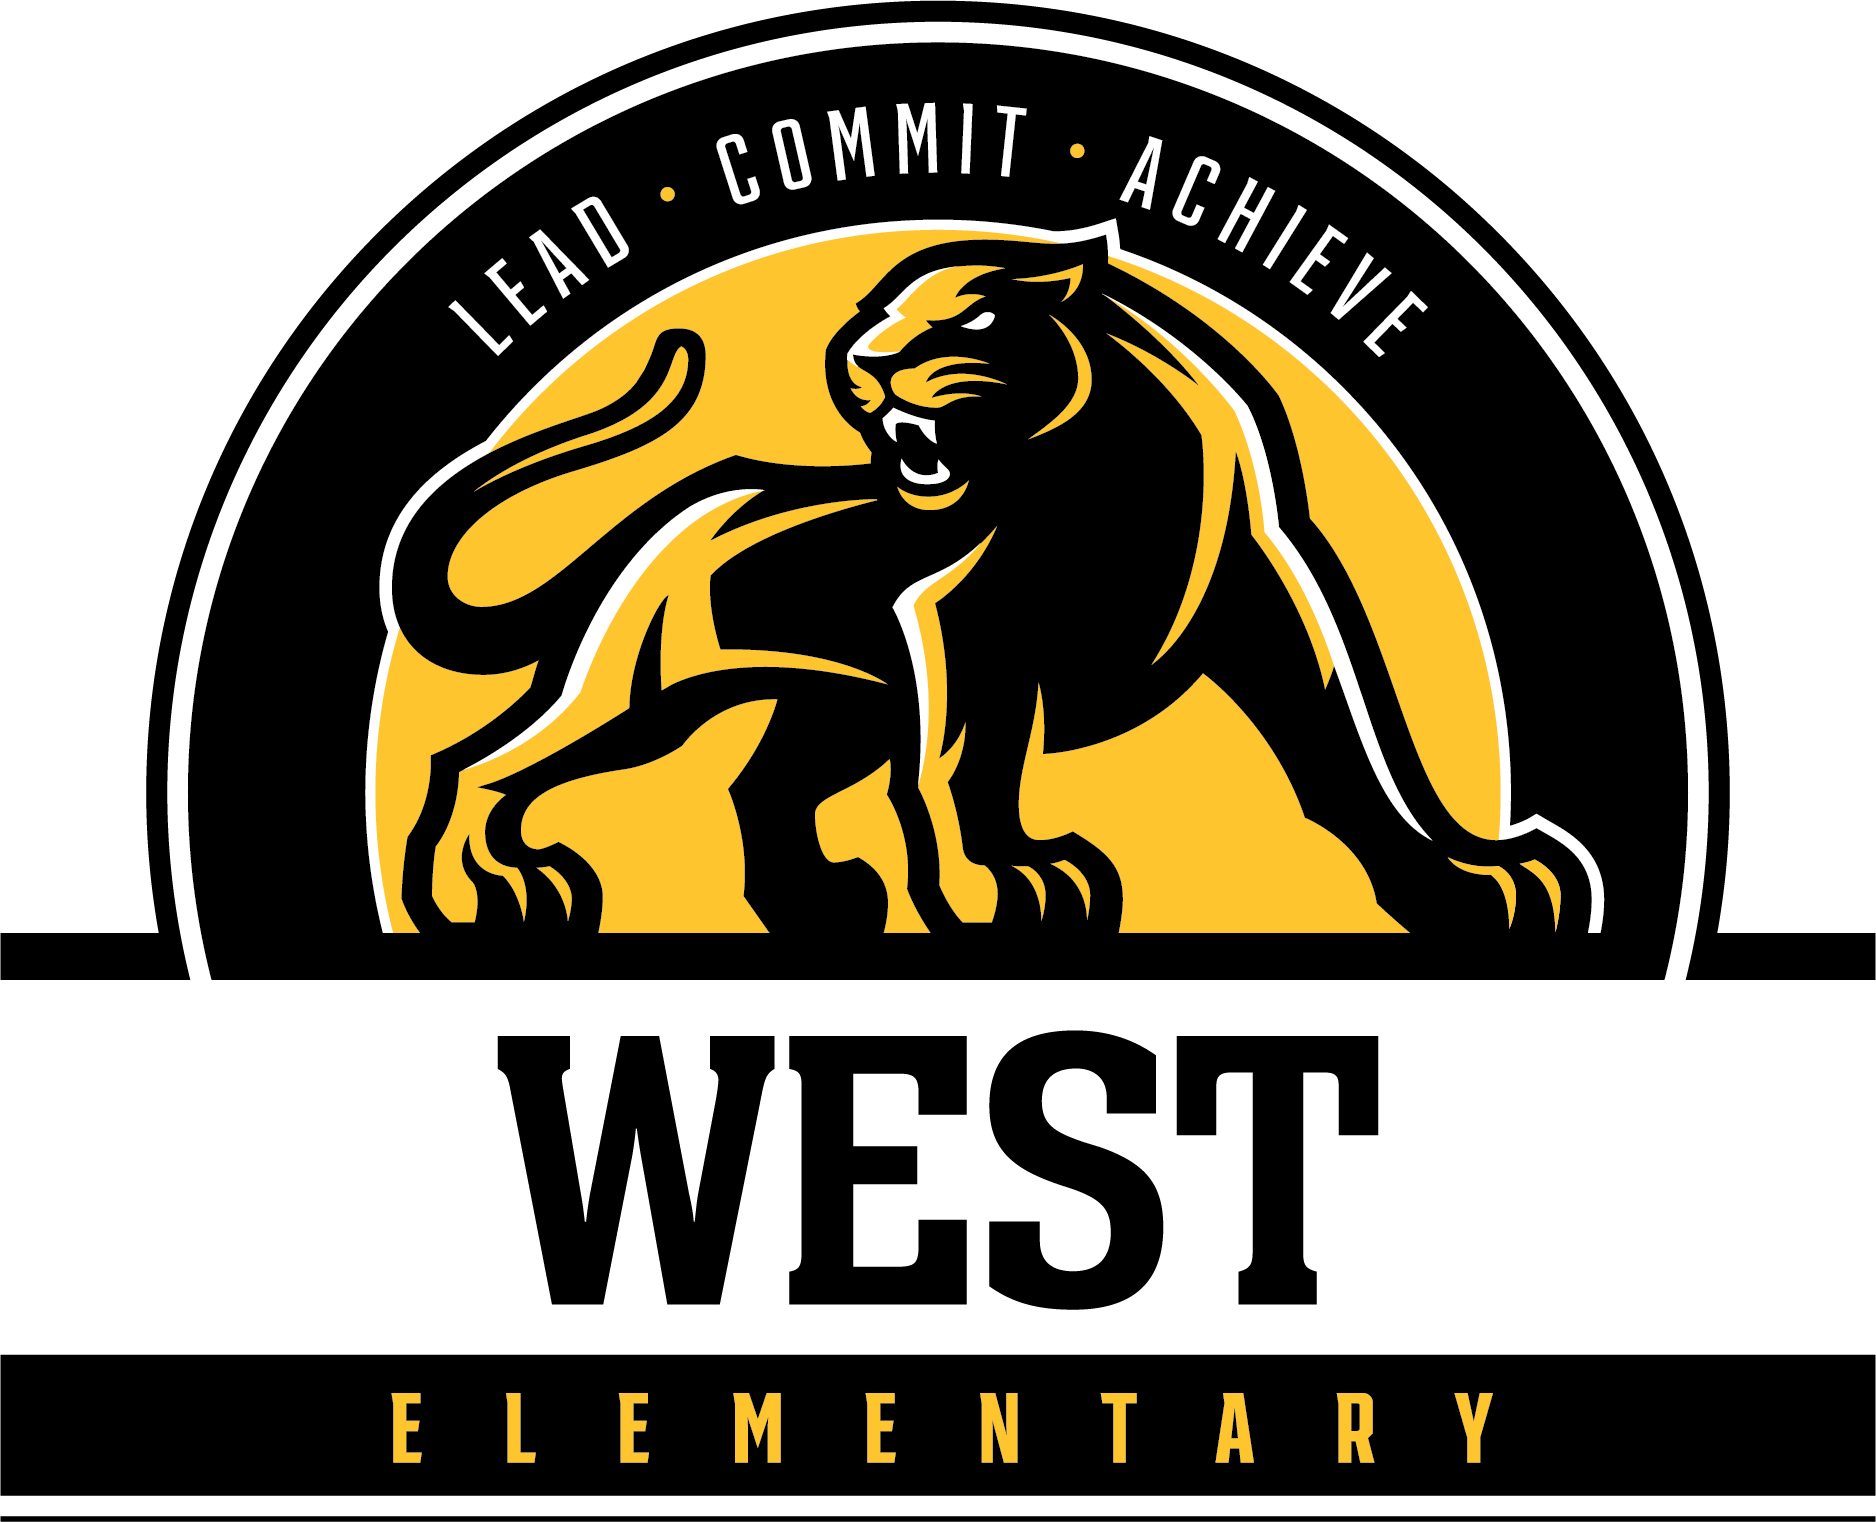 West Elementary: Lead-Commit-Achieve